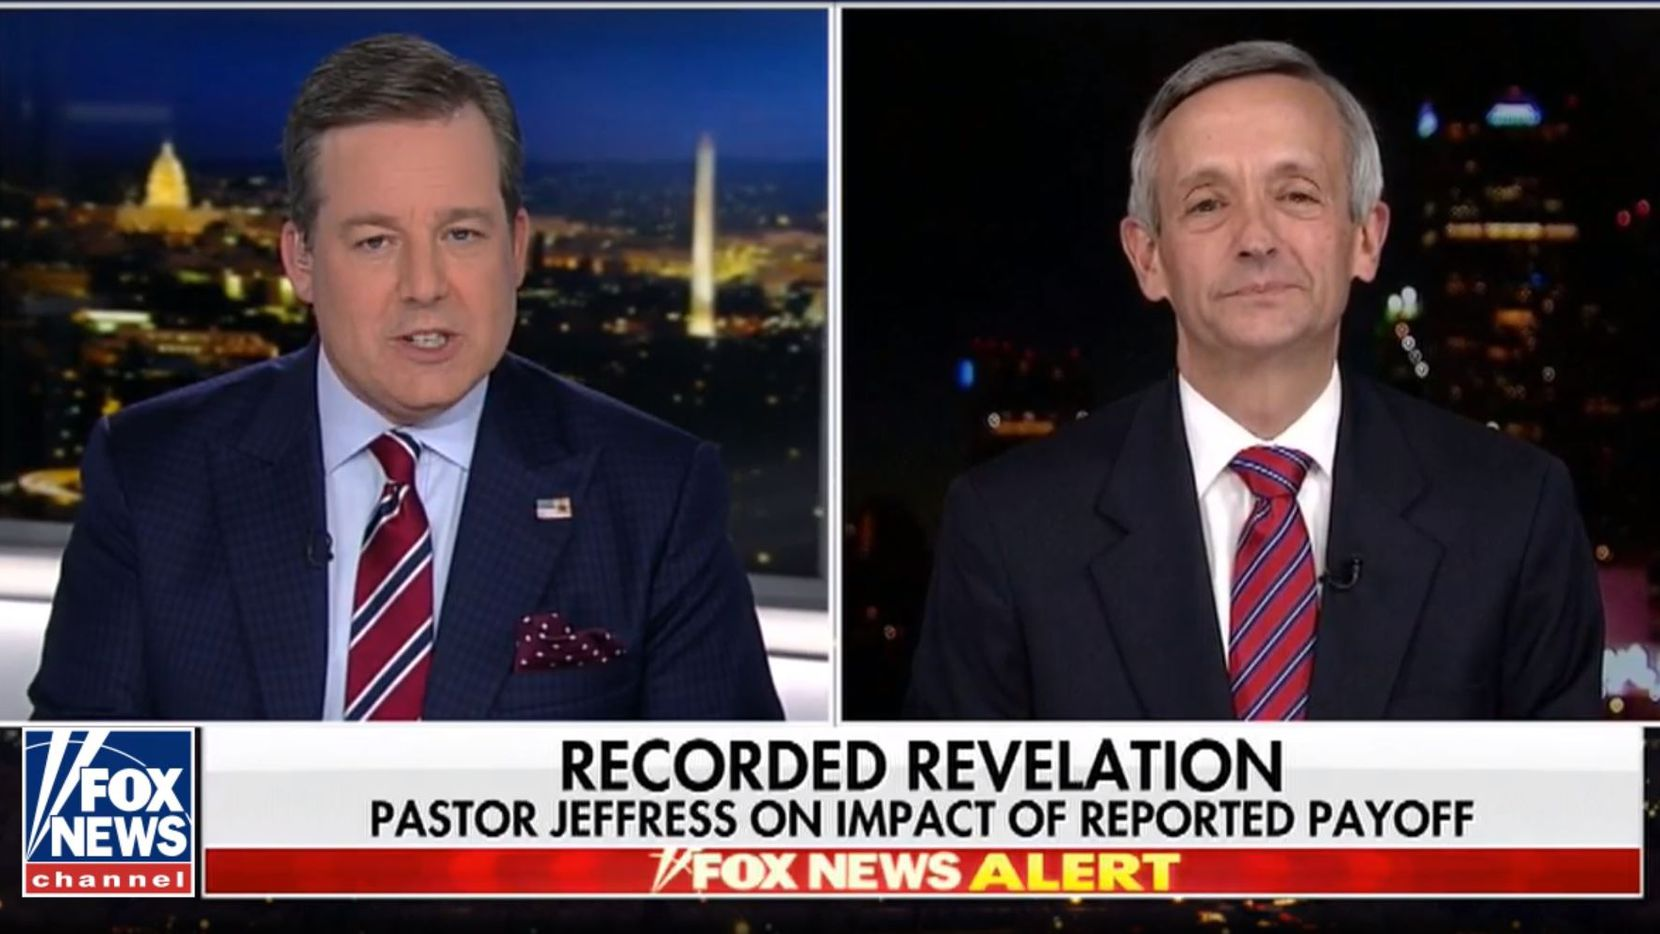 Rev. Robert Jeffress went on Fox News Friday night to defend President Donald Trump amid the news that the president's longtime lawyer, Michael Cohen, recorded him discussing payment of a Playboy model. (Fox News)